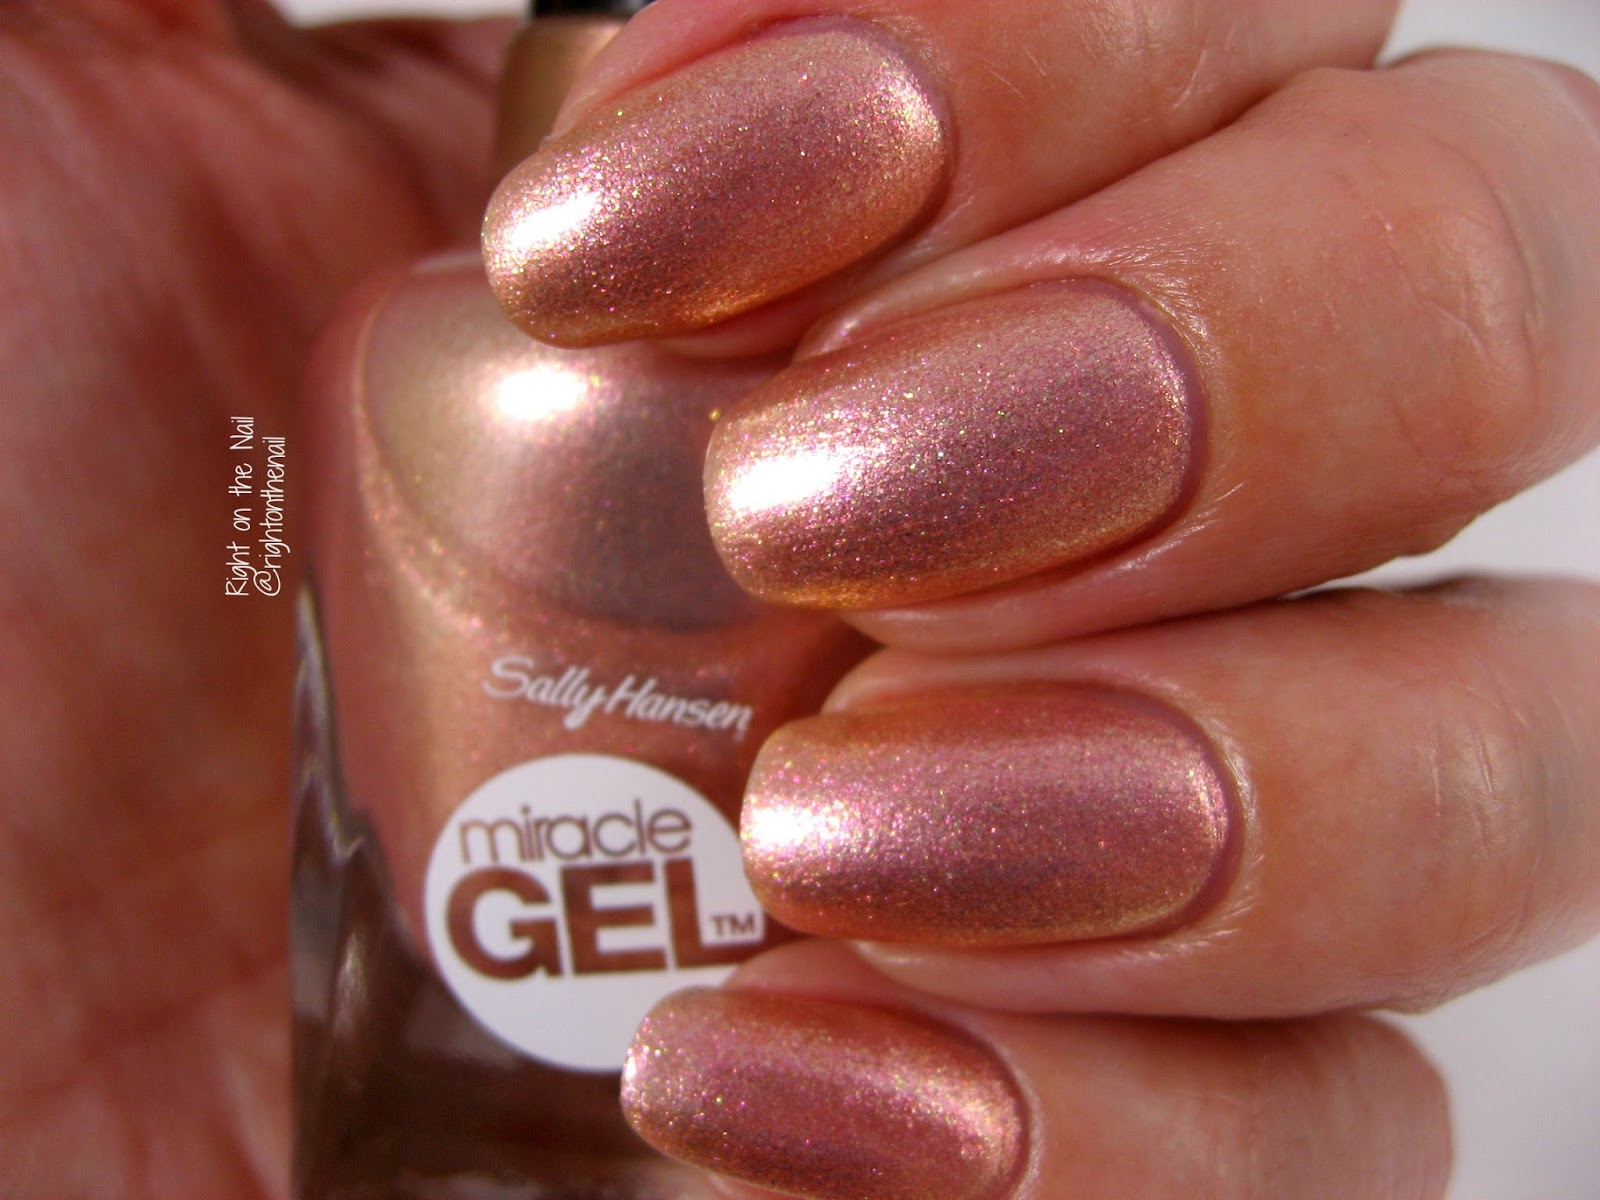 Right on the Nail: Sally Hansen Miracle Gel Travel Stories Romantic ...